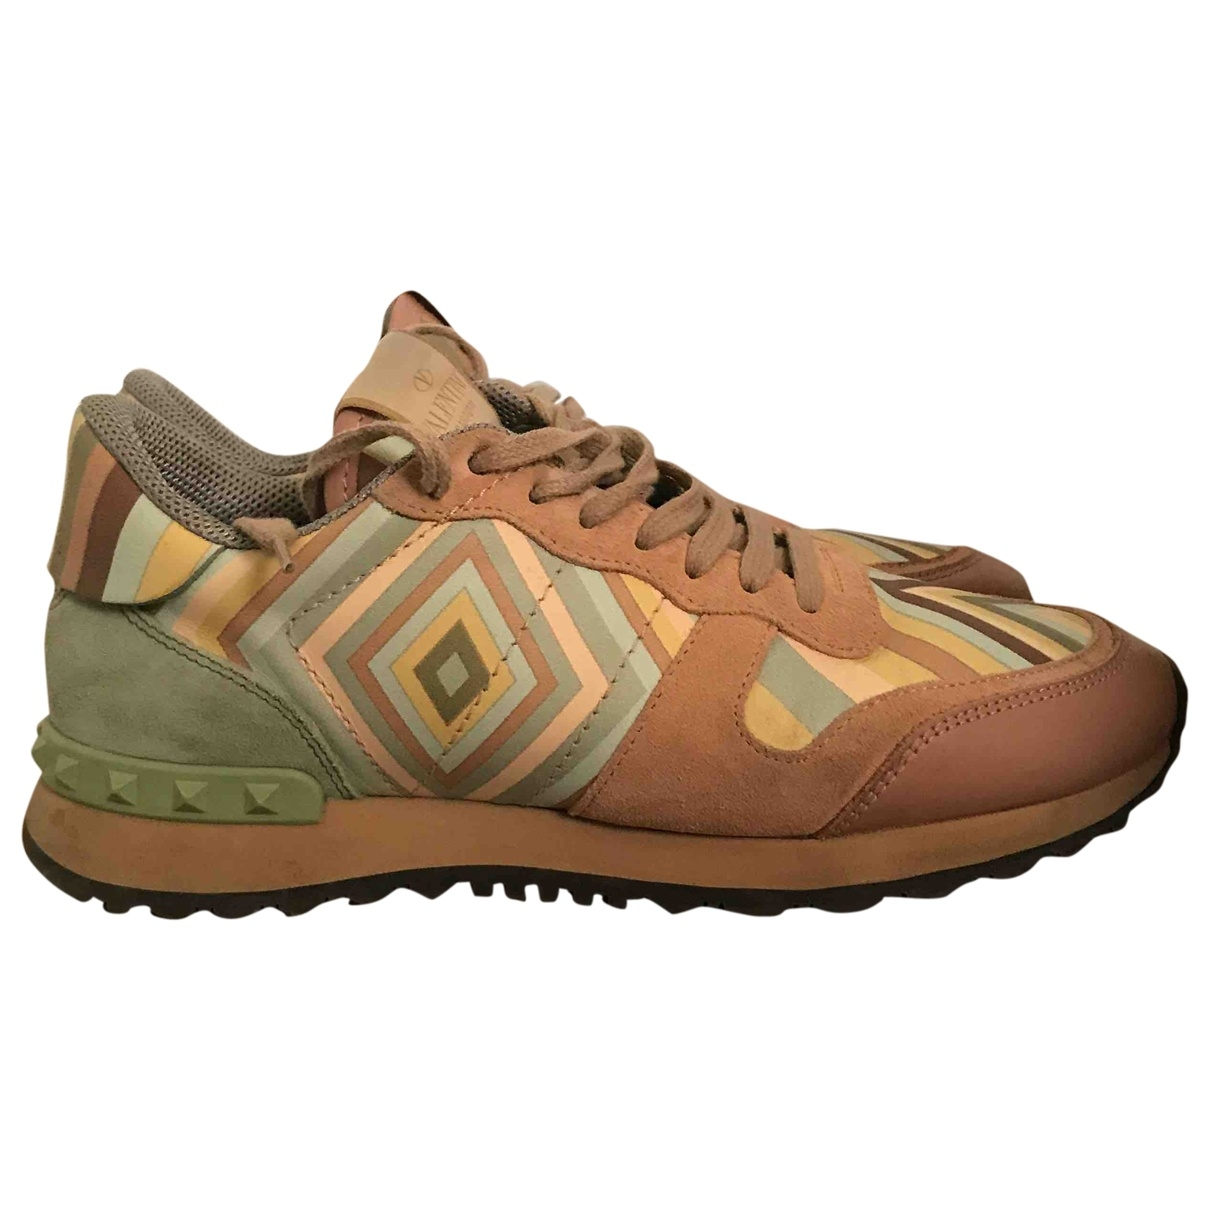 Valentino Garavani Rockstud Multicolour Leather Trainers for Women 38 EU